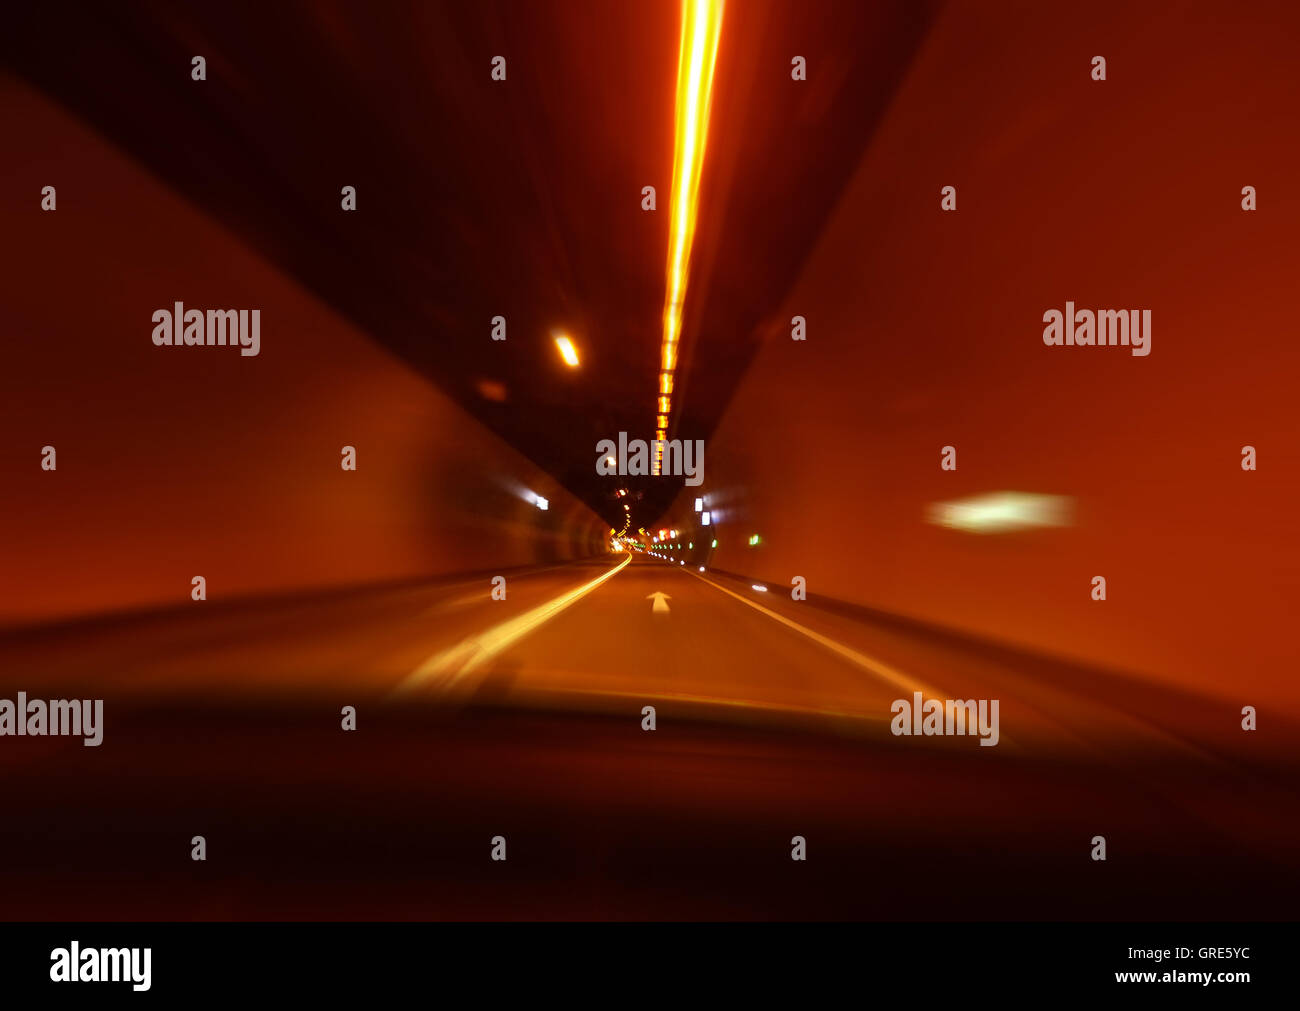 Tunnel, Symbol Of Tunnel Vision, Blurring Symbolizes Dizziness - Stock Image